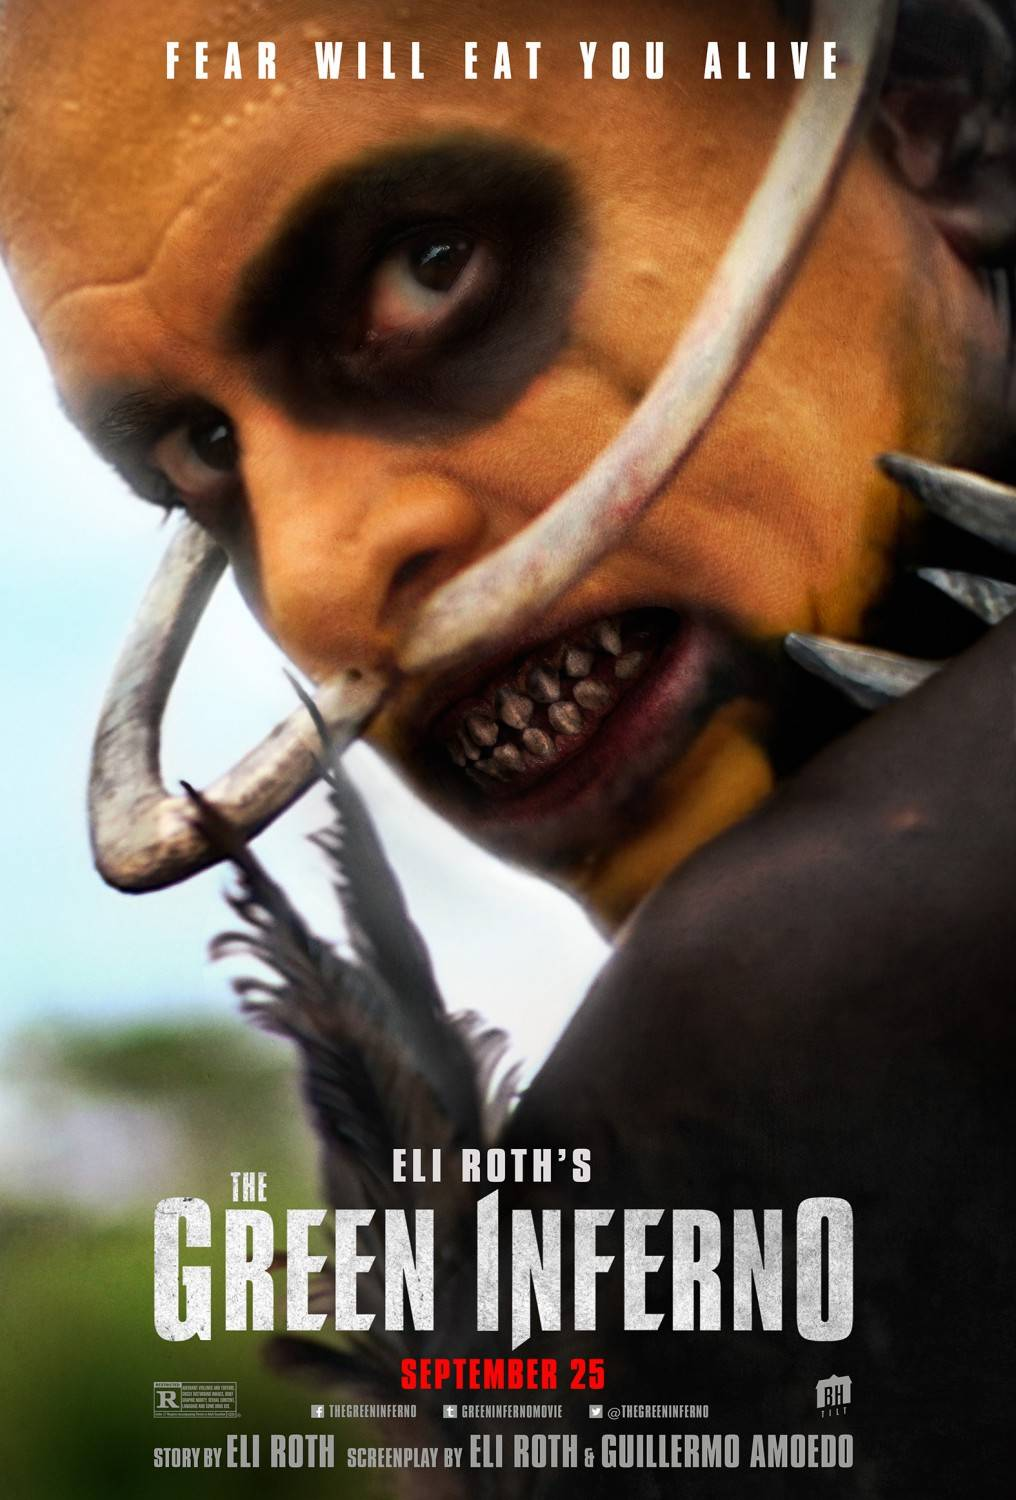 Poster for Eli Roth's 'The Green Inferno'